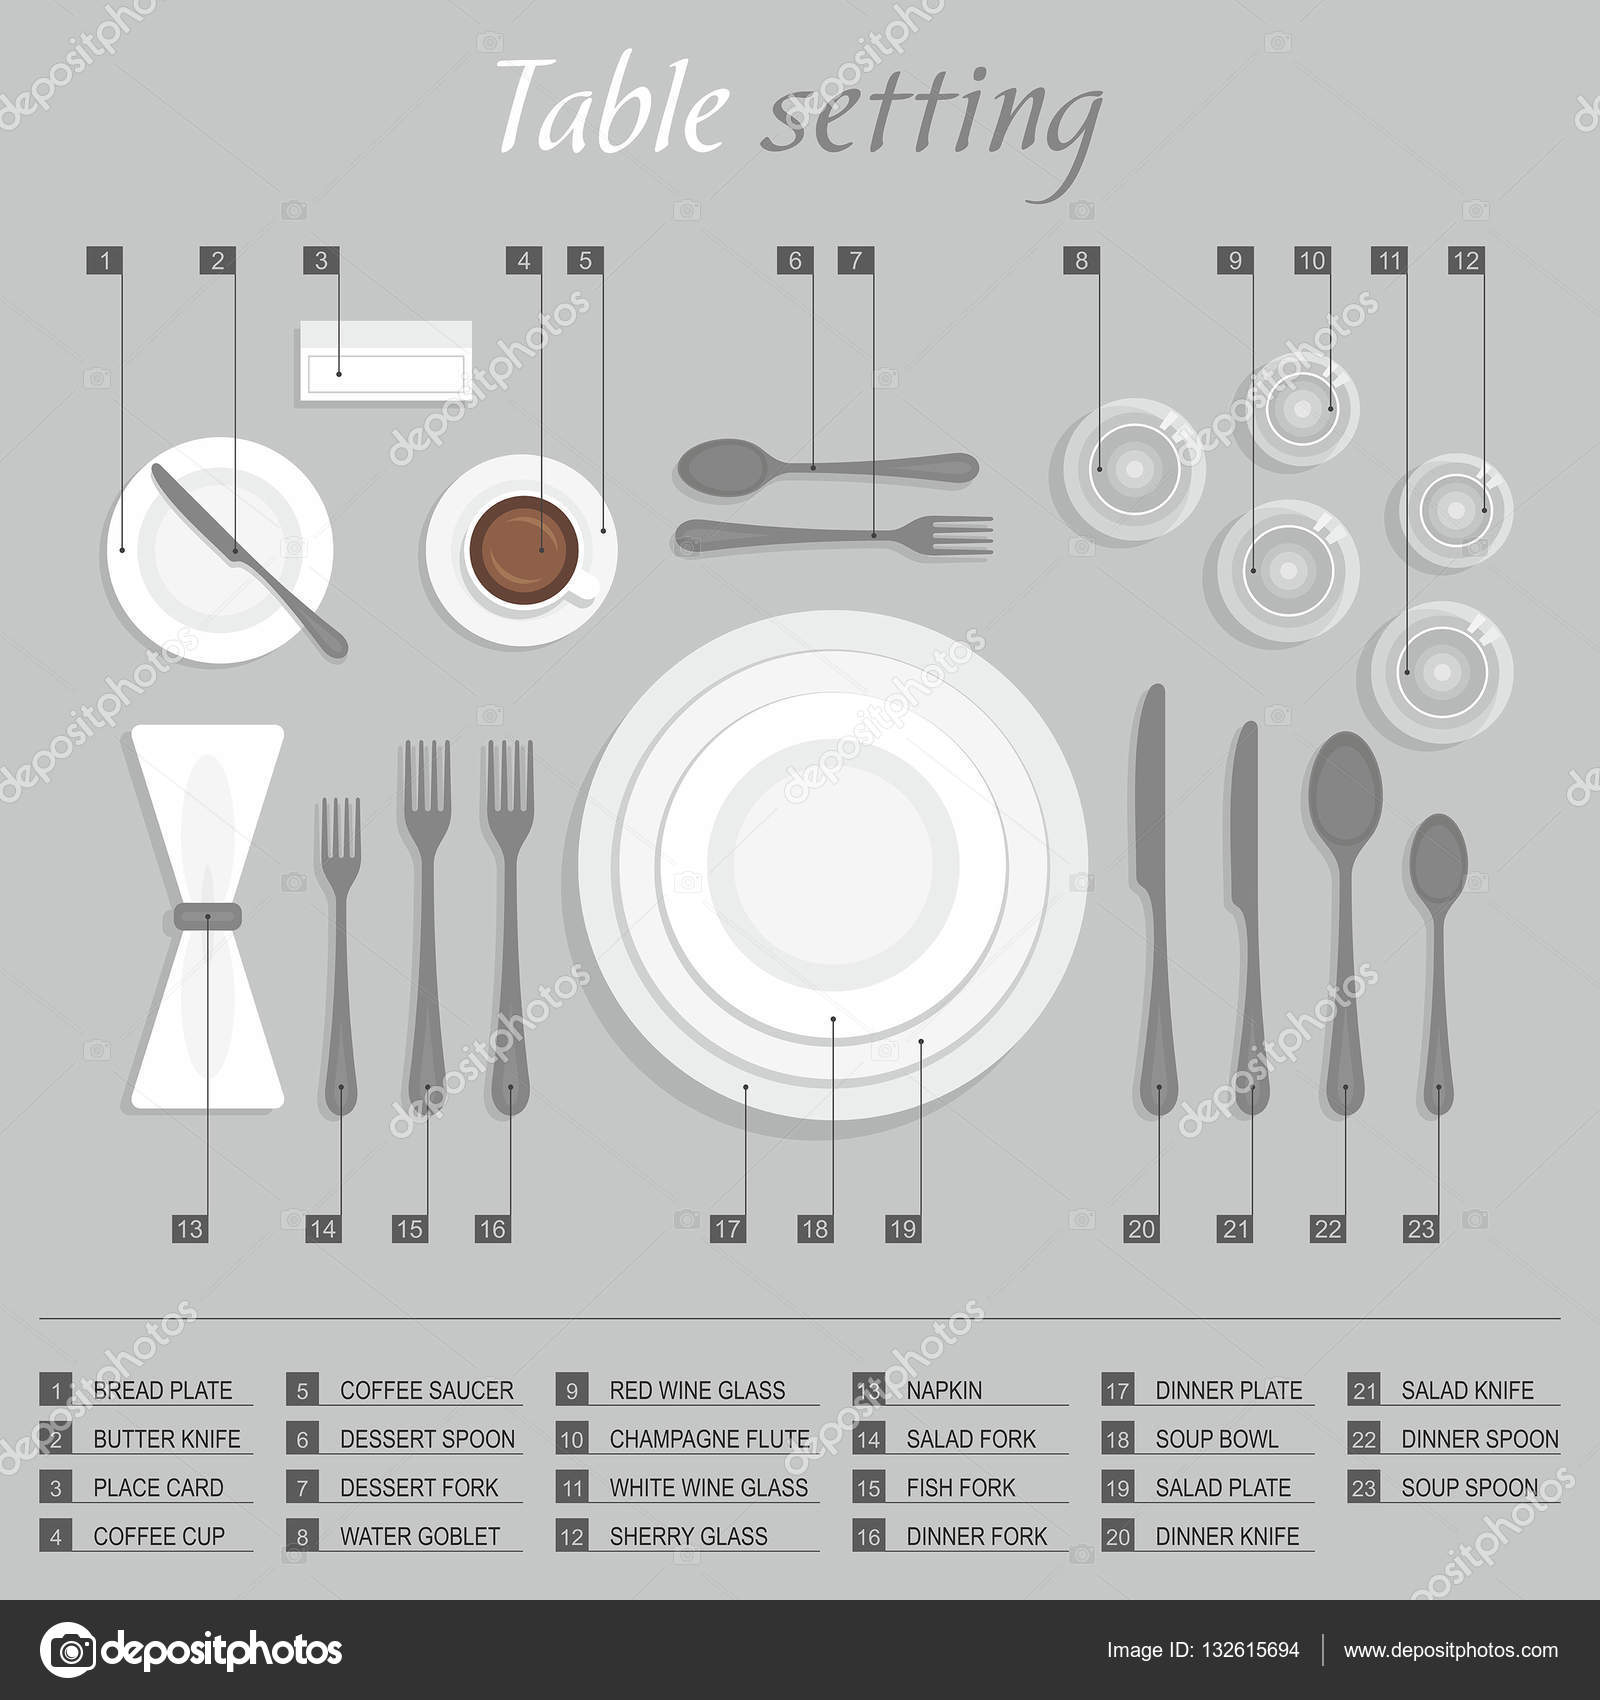 hight resolution of table setting infographic stock vector